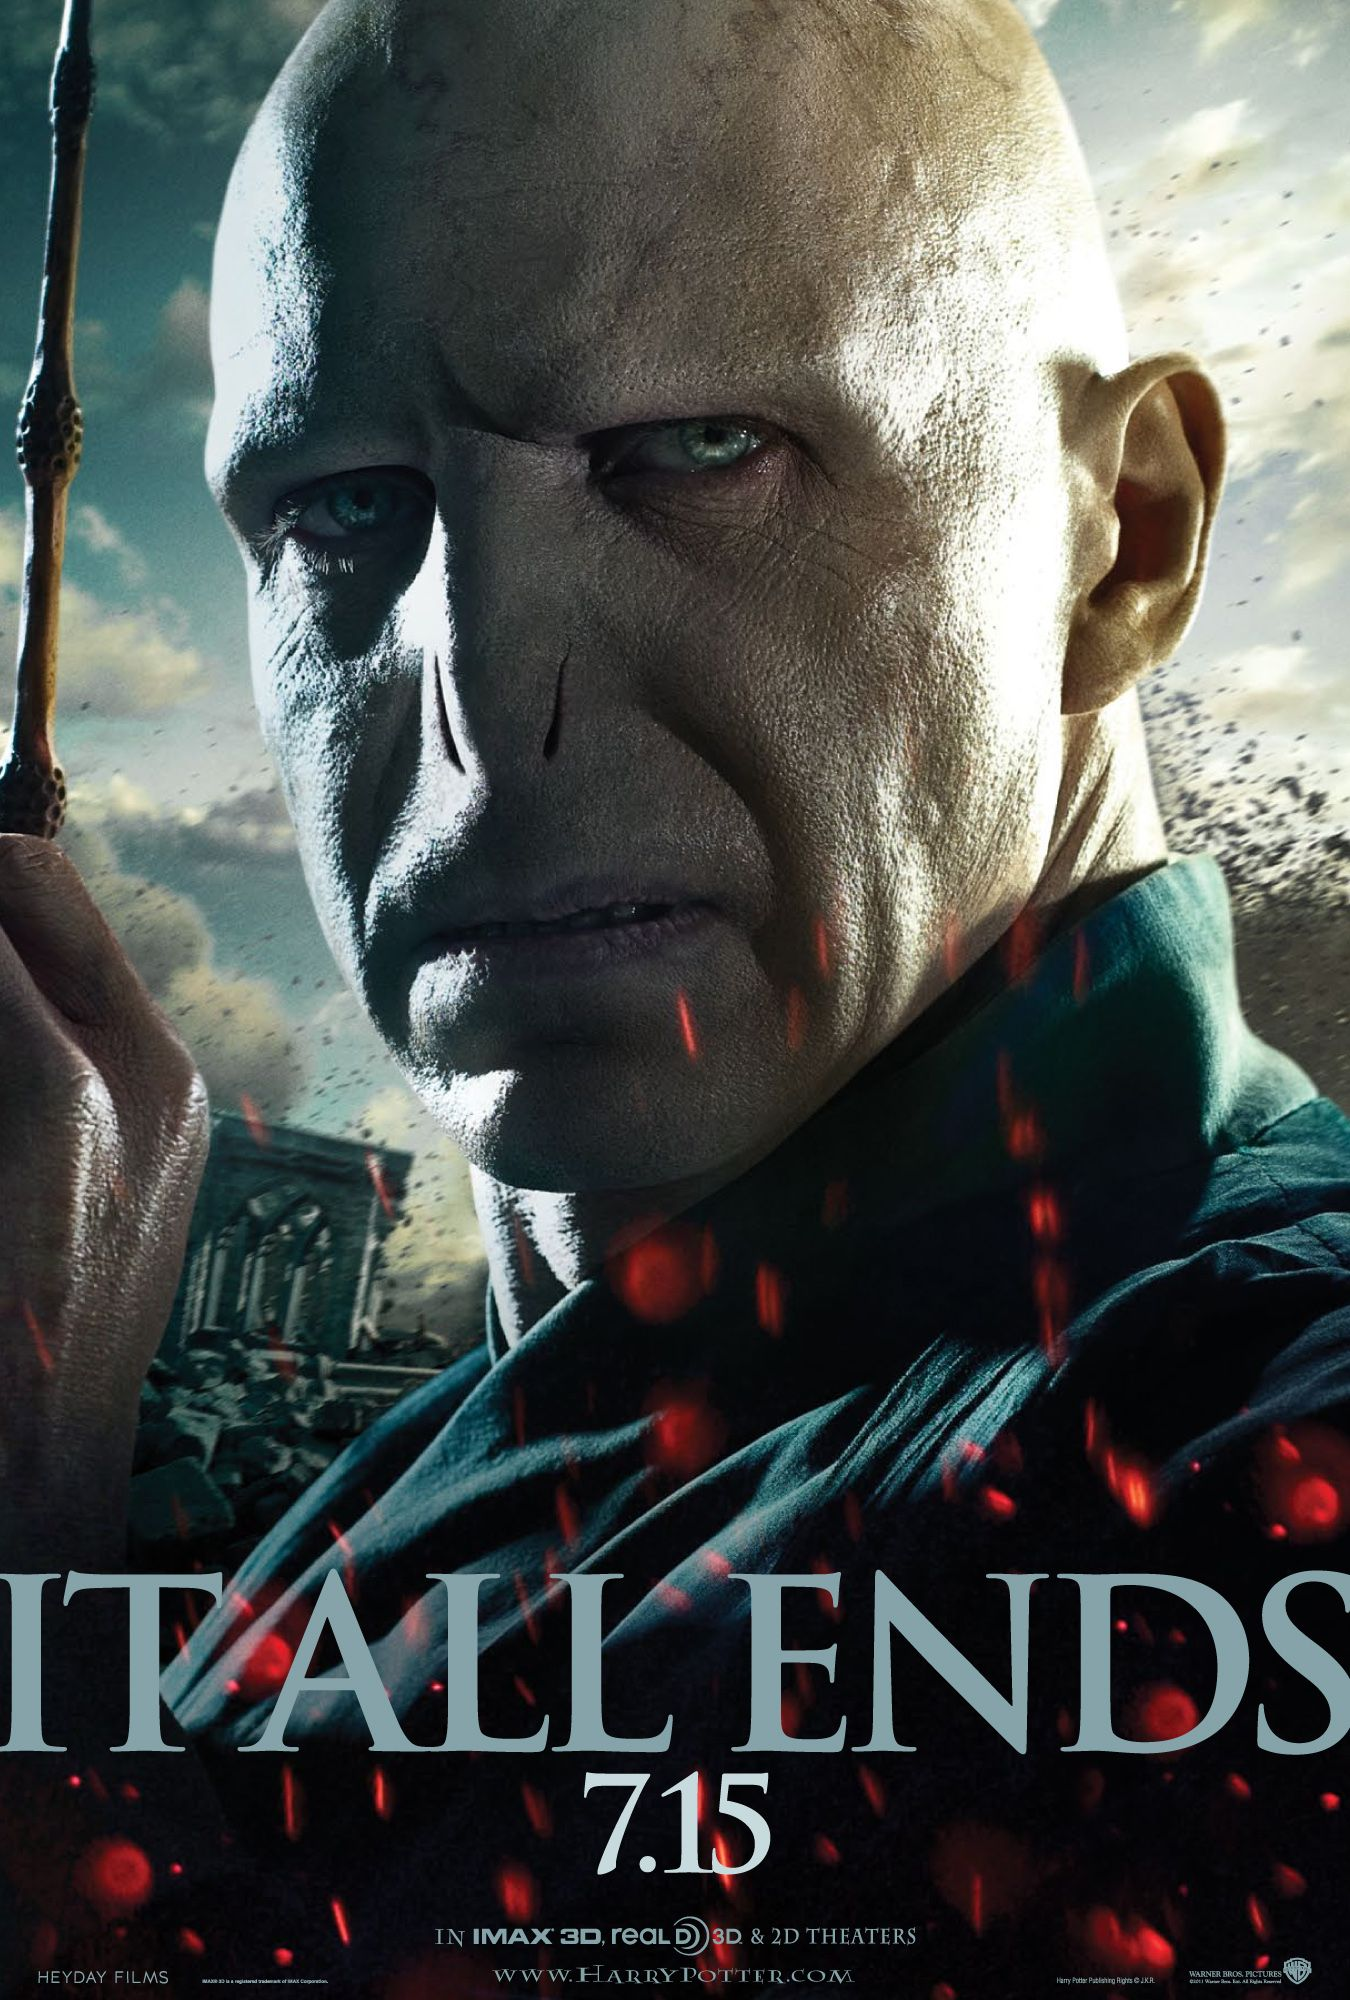 Harry Potter Deathly Hallows 2 Movie Poster Voldemort 01 Jpg 1350 2000 Harry Potter Poster Voldemort Deathly Hallows Part 2